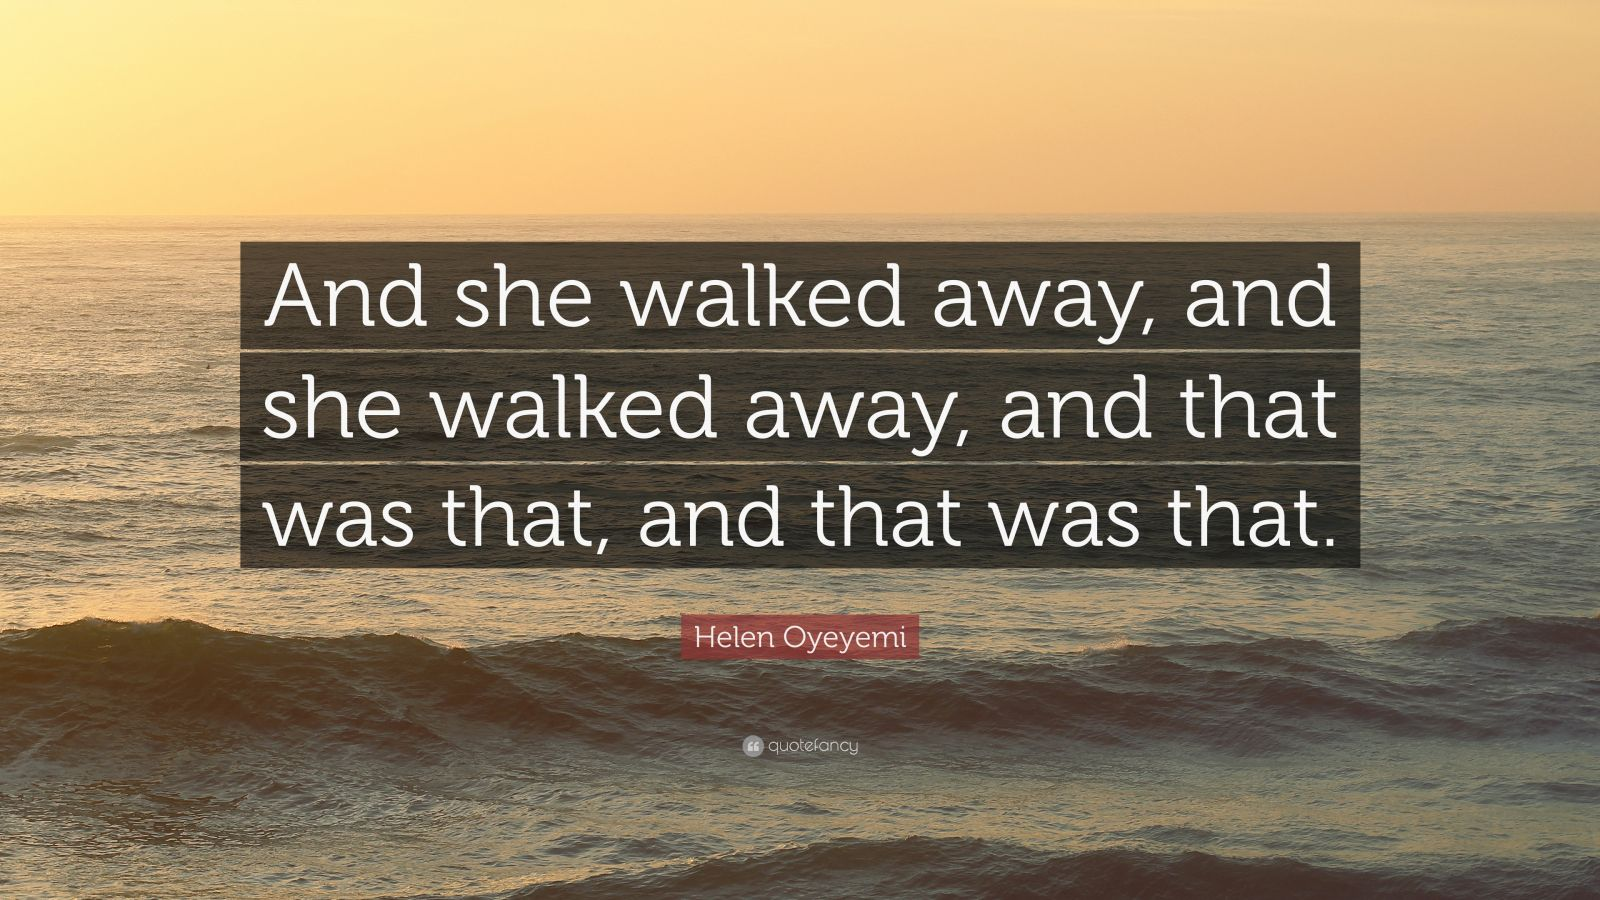 """Helen Oyeyemi Quote: """"And she walked away, and she walked away, and that was that, and that was that."""""""